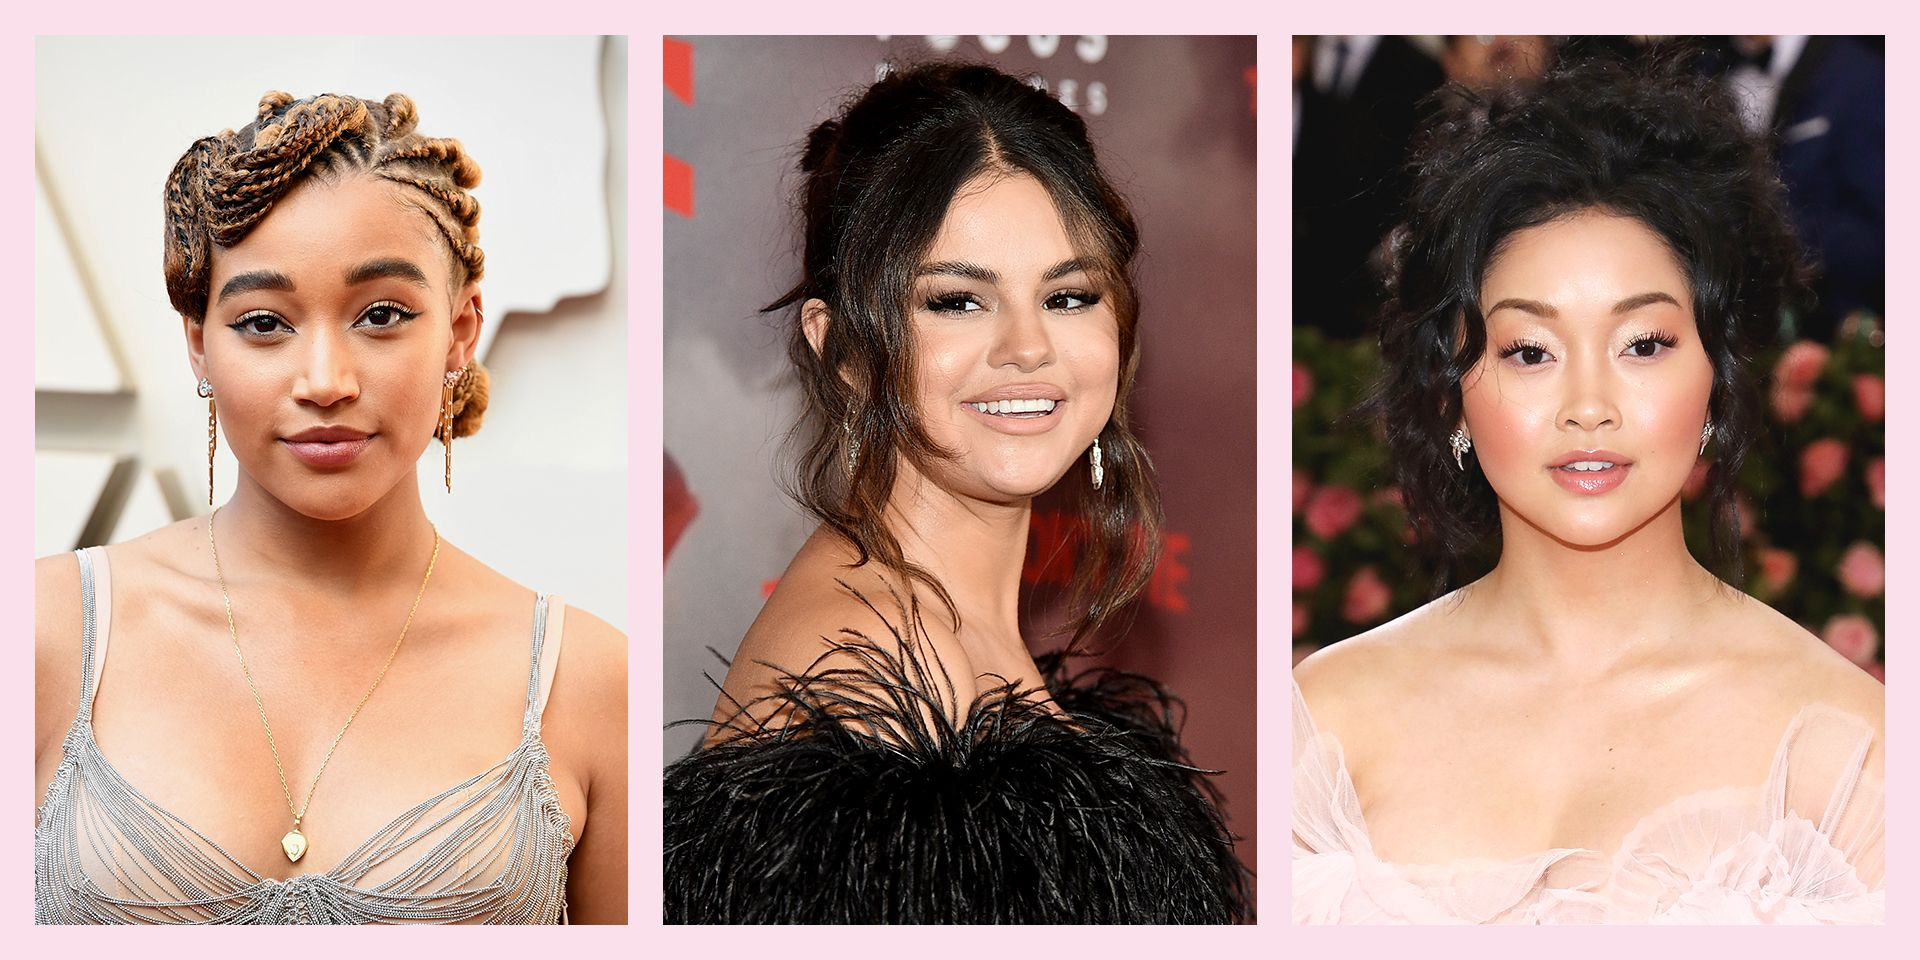 36 Cute Homecoming Hairstyles For 2020 Homecoming Hair Ideas